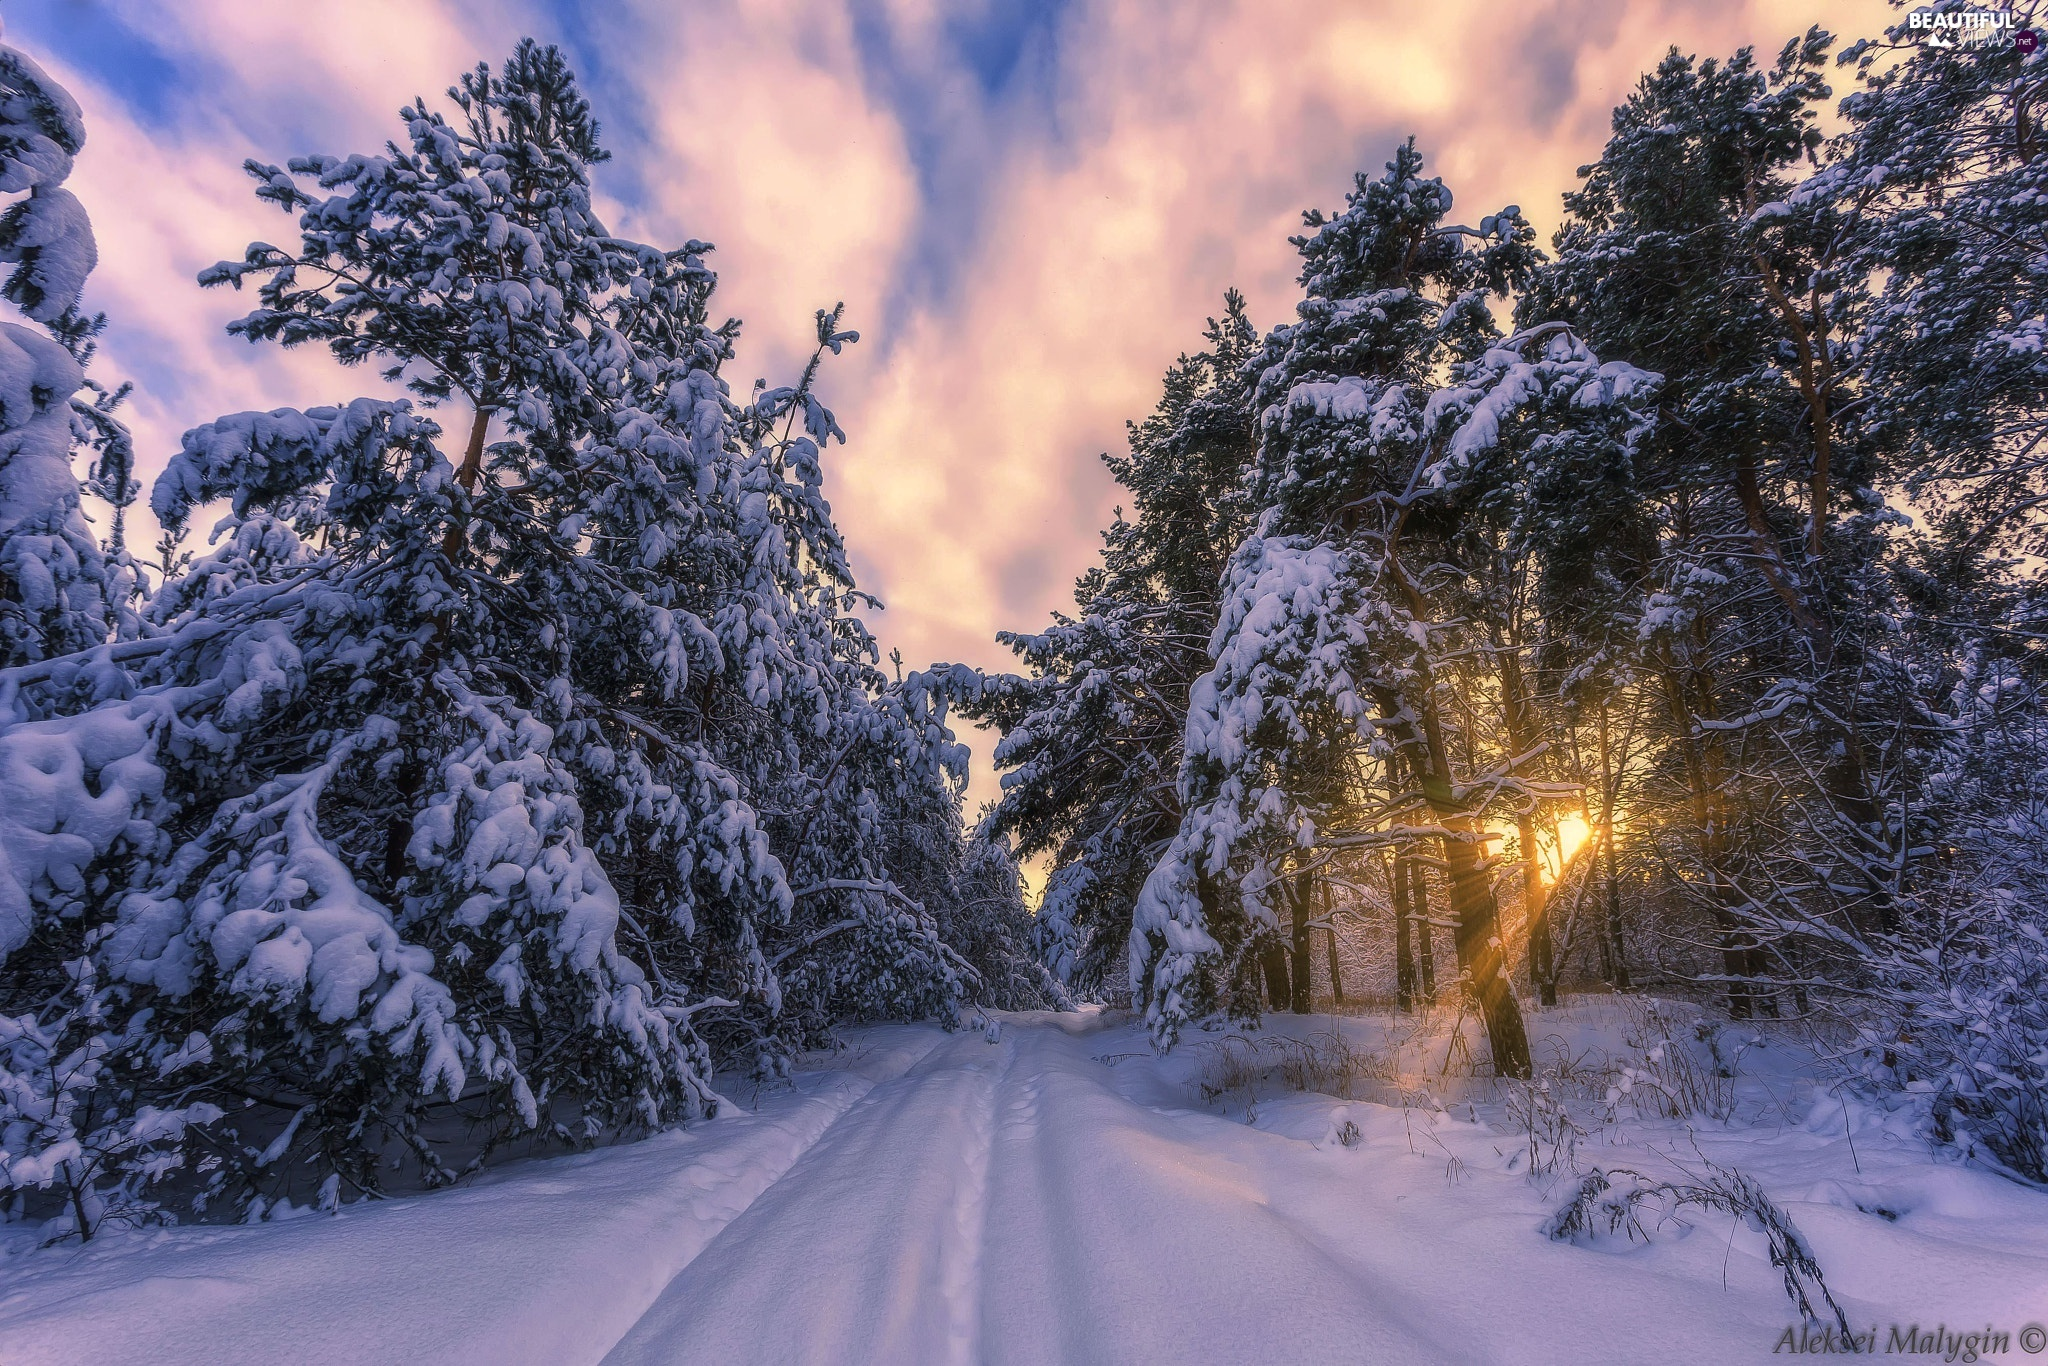 forest, winter, Snowy, trees, Way, clouds, light breaking through sky, snowy, viewes